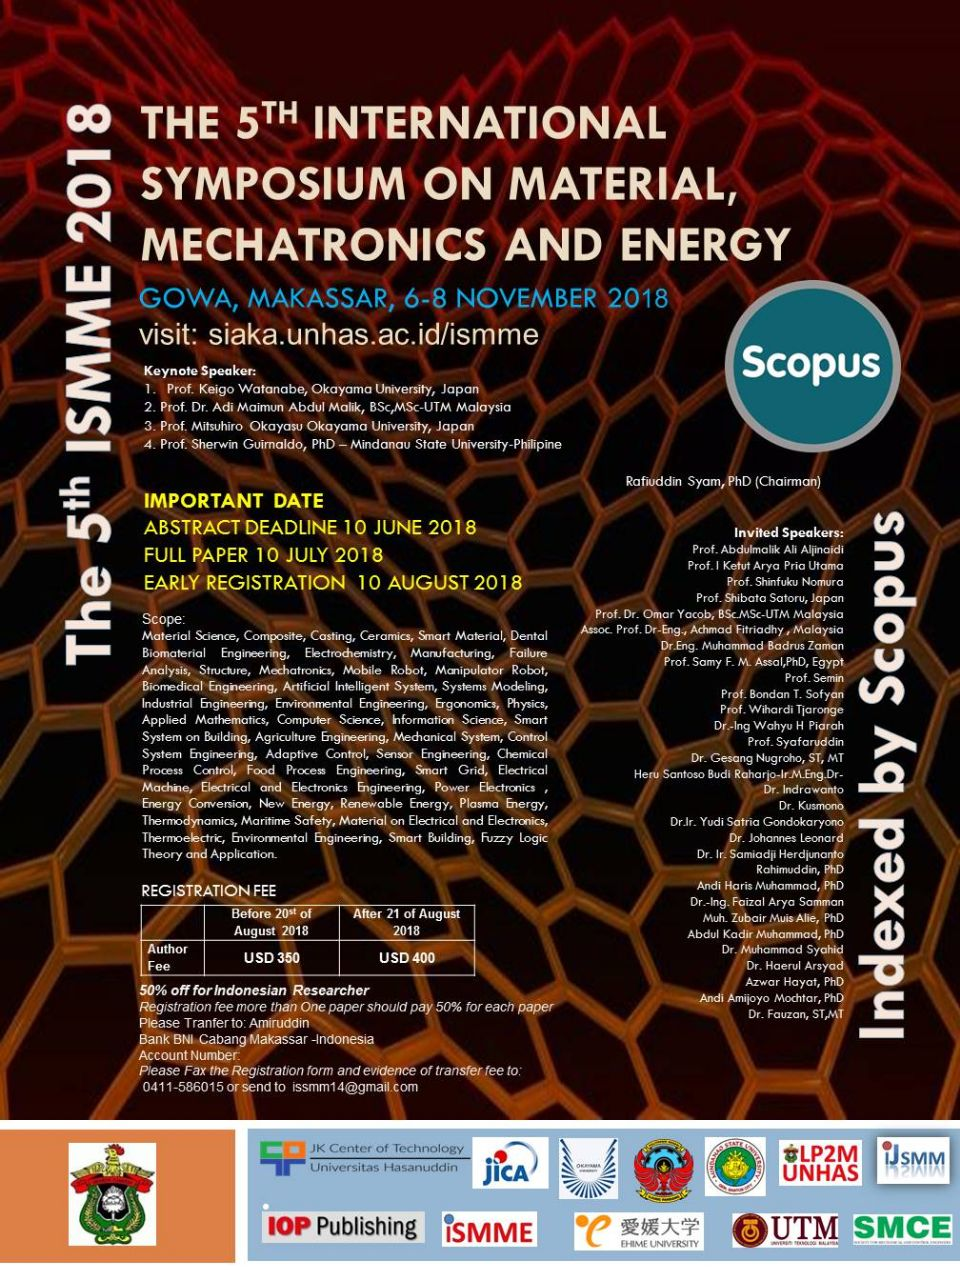 The 5th International Symposium on Material, Mechatronics and Energy 2018